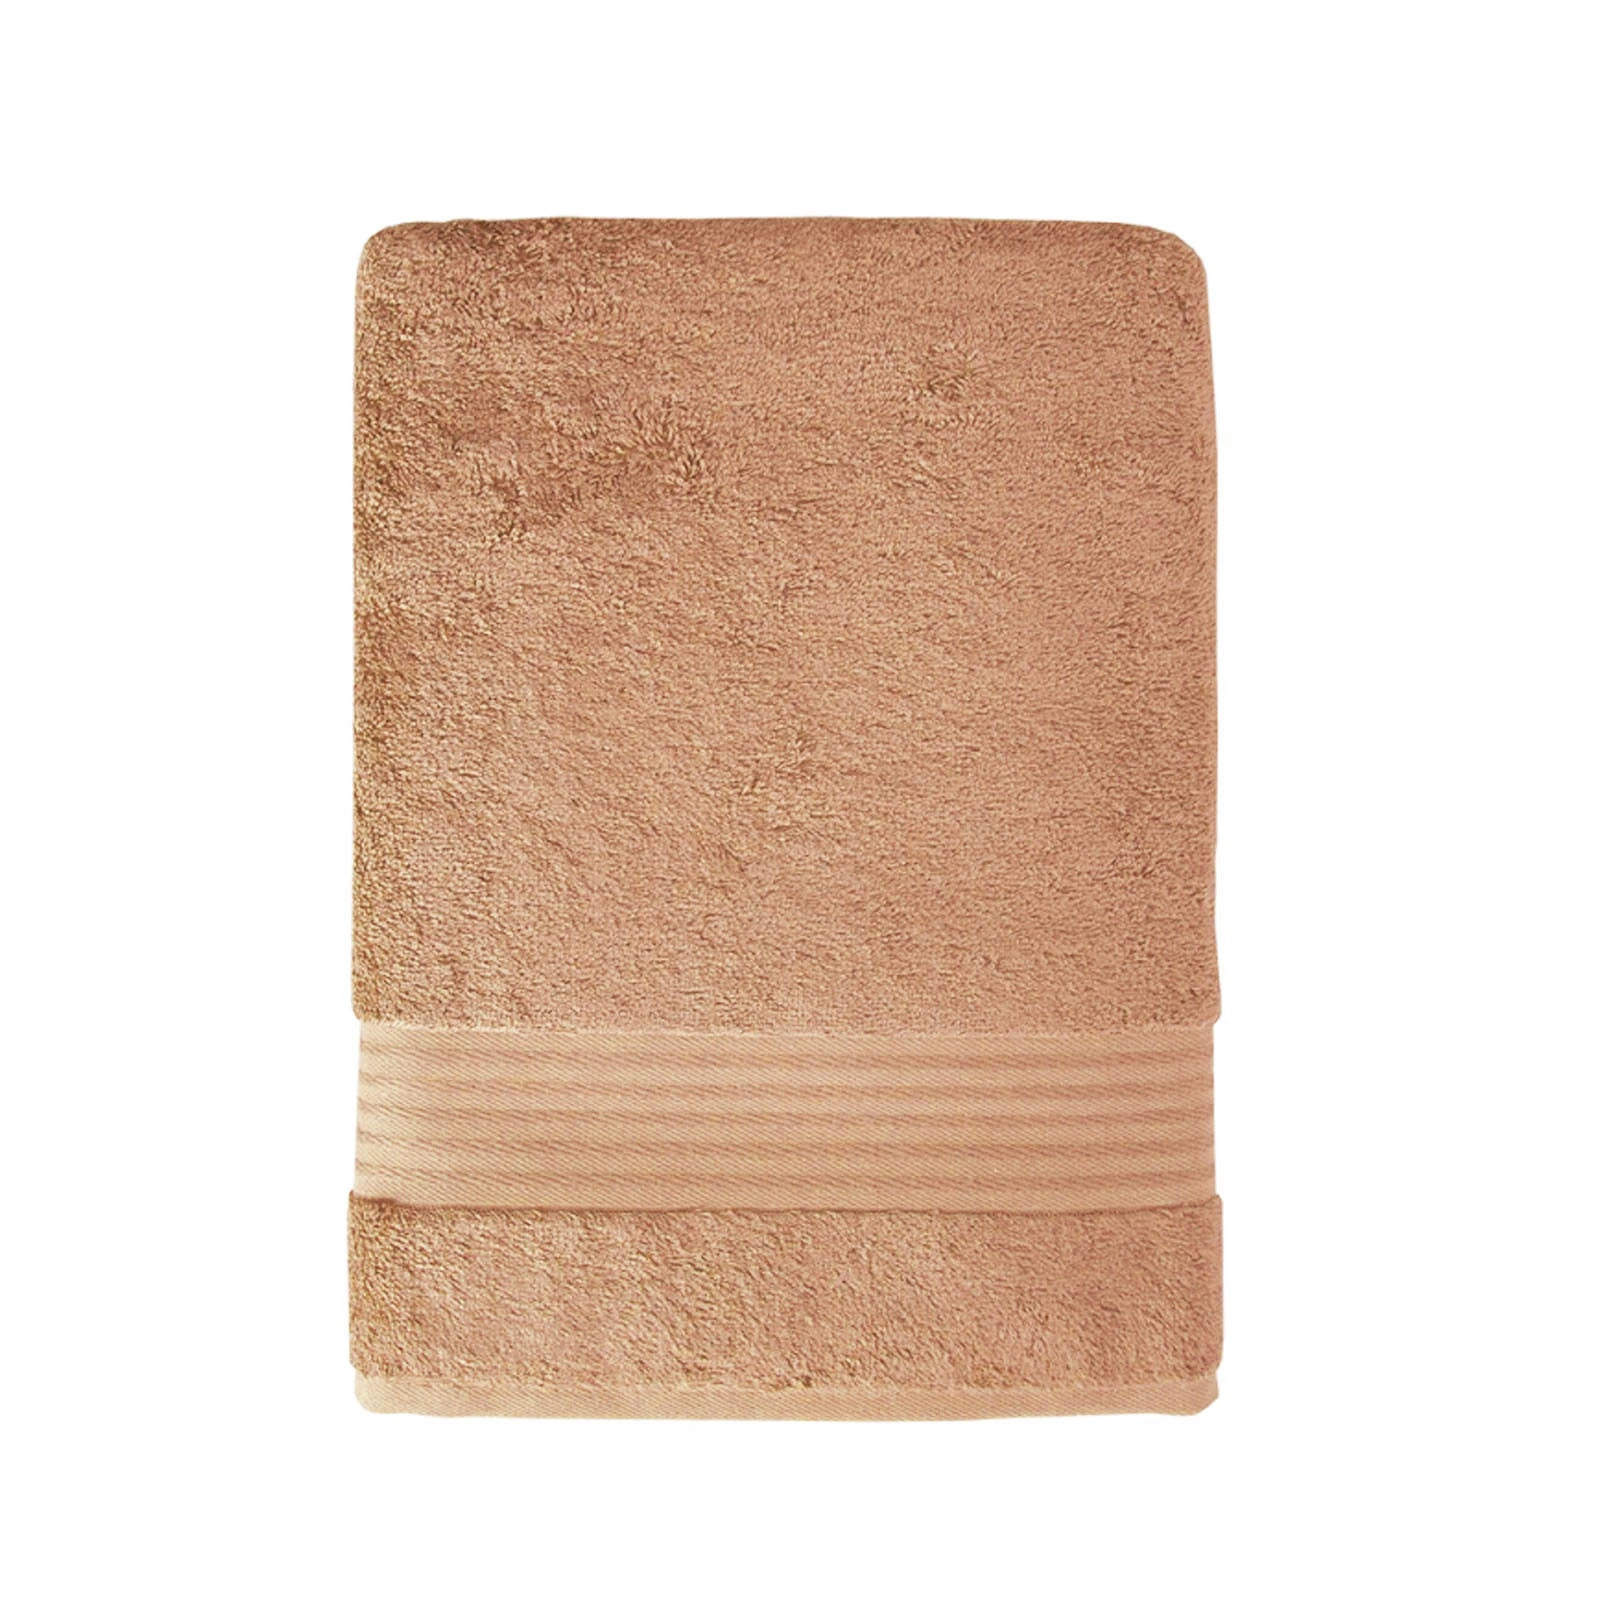 85X150 PURE SOFT towel  200.05.01.0269 - ebarza